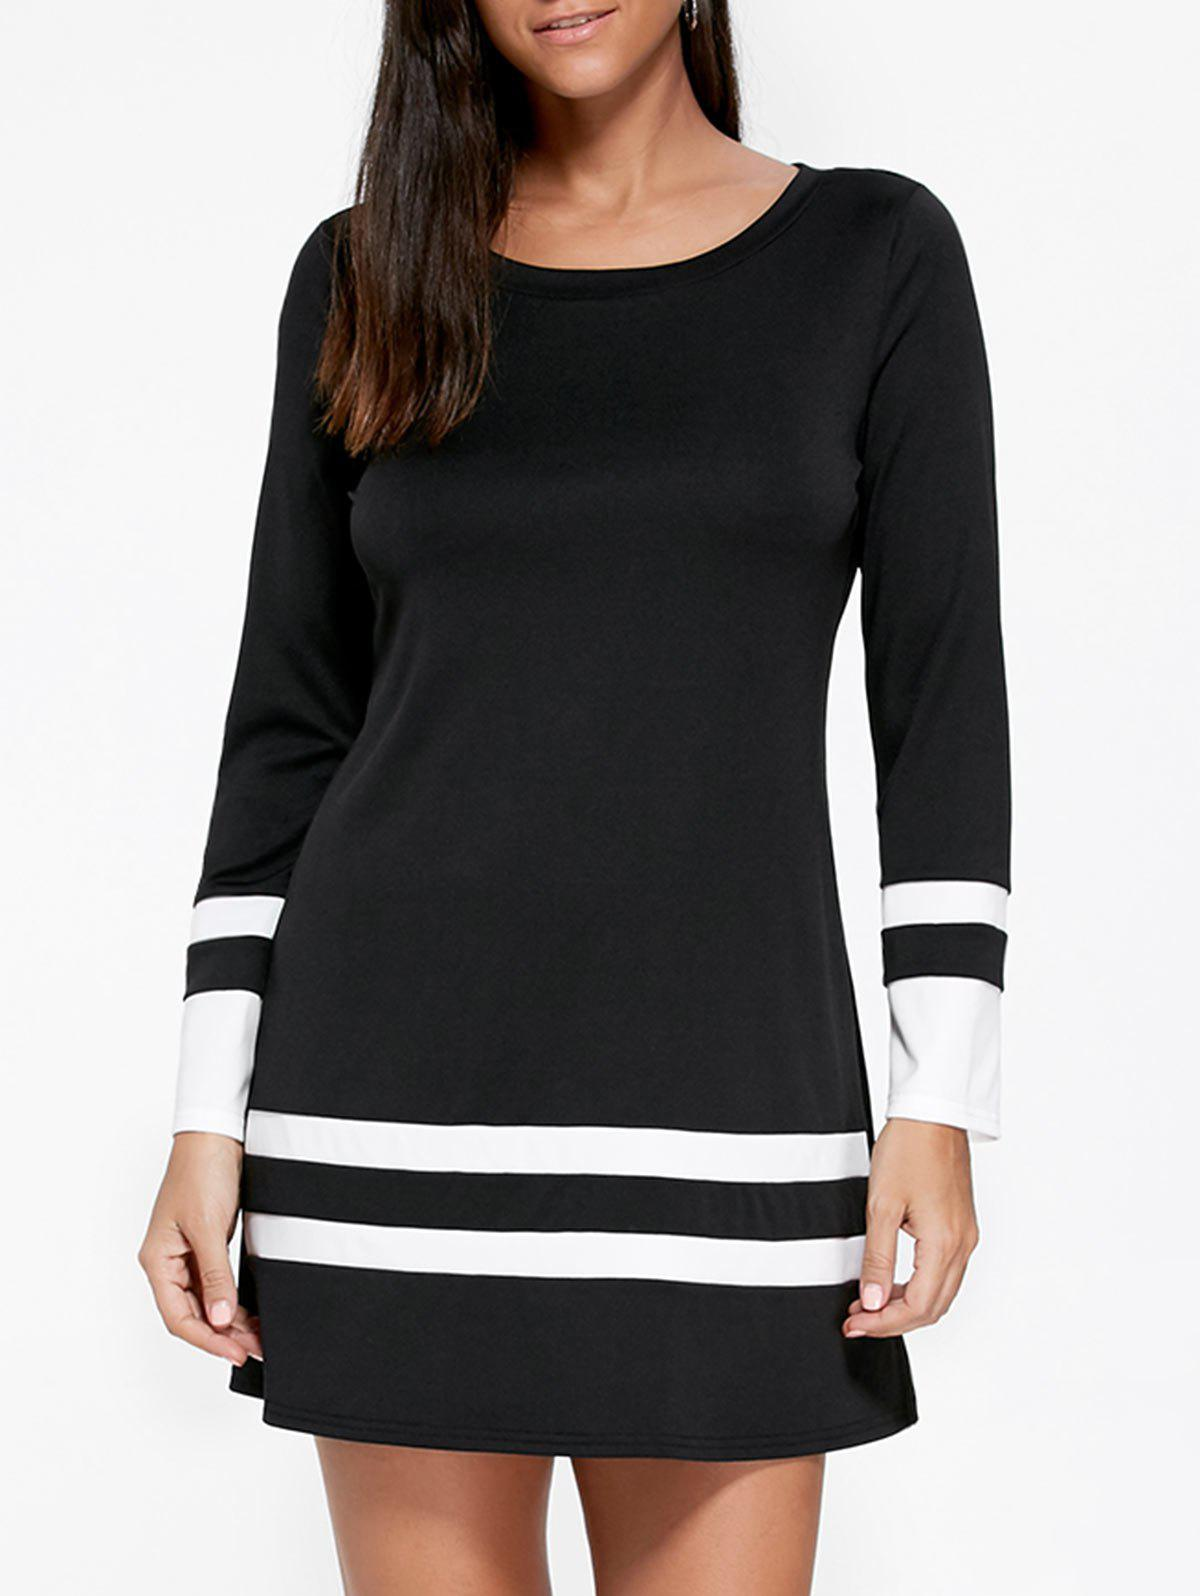 Long Sleeve Two Tone T-shirt DressWOMEN<br><br>Size: 2XL; Color: BLACK; Style: Casual; Material: Polyester,Spandex; Silhouette: Straight; Dresses Length: Mini; Neckline: Round Collar; Sleeve Length: Long Sleeves; Pattern Type: Striped; With Belt: No; Season: Fall,Spring,Summer; Weight: 0.3000kg; Package Contents: 1 x Dress; Occasion: Casual ,Going Out;